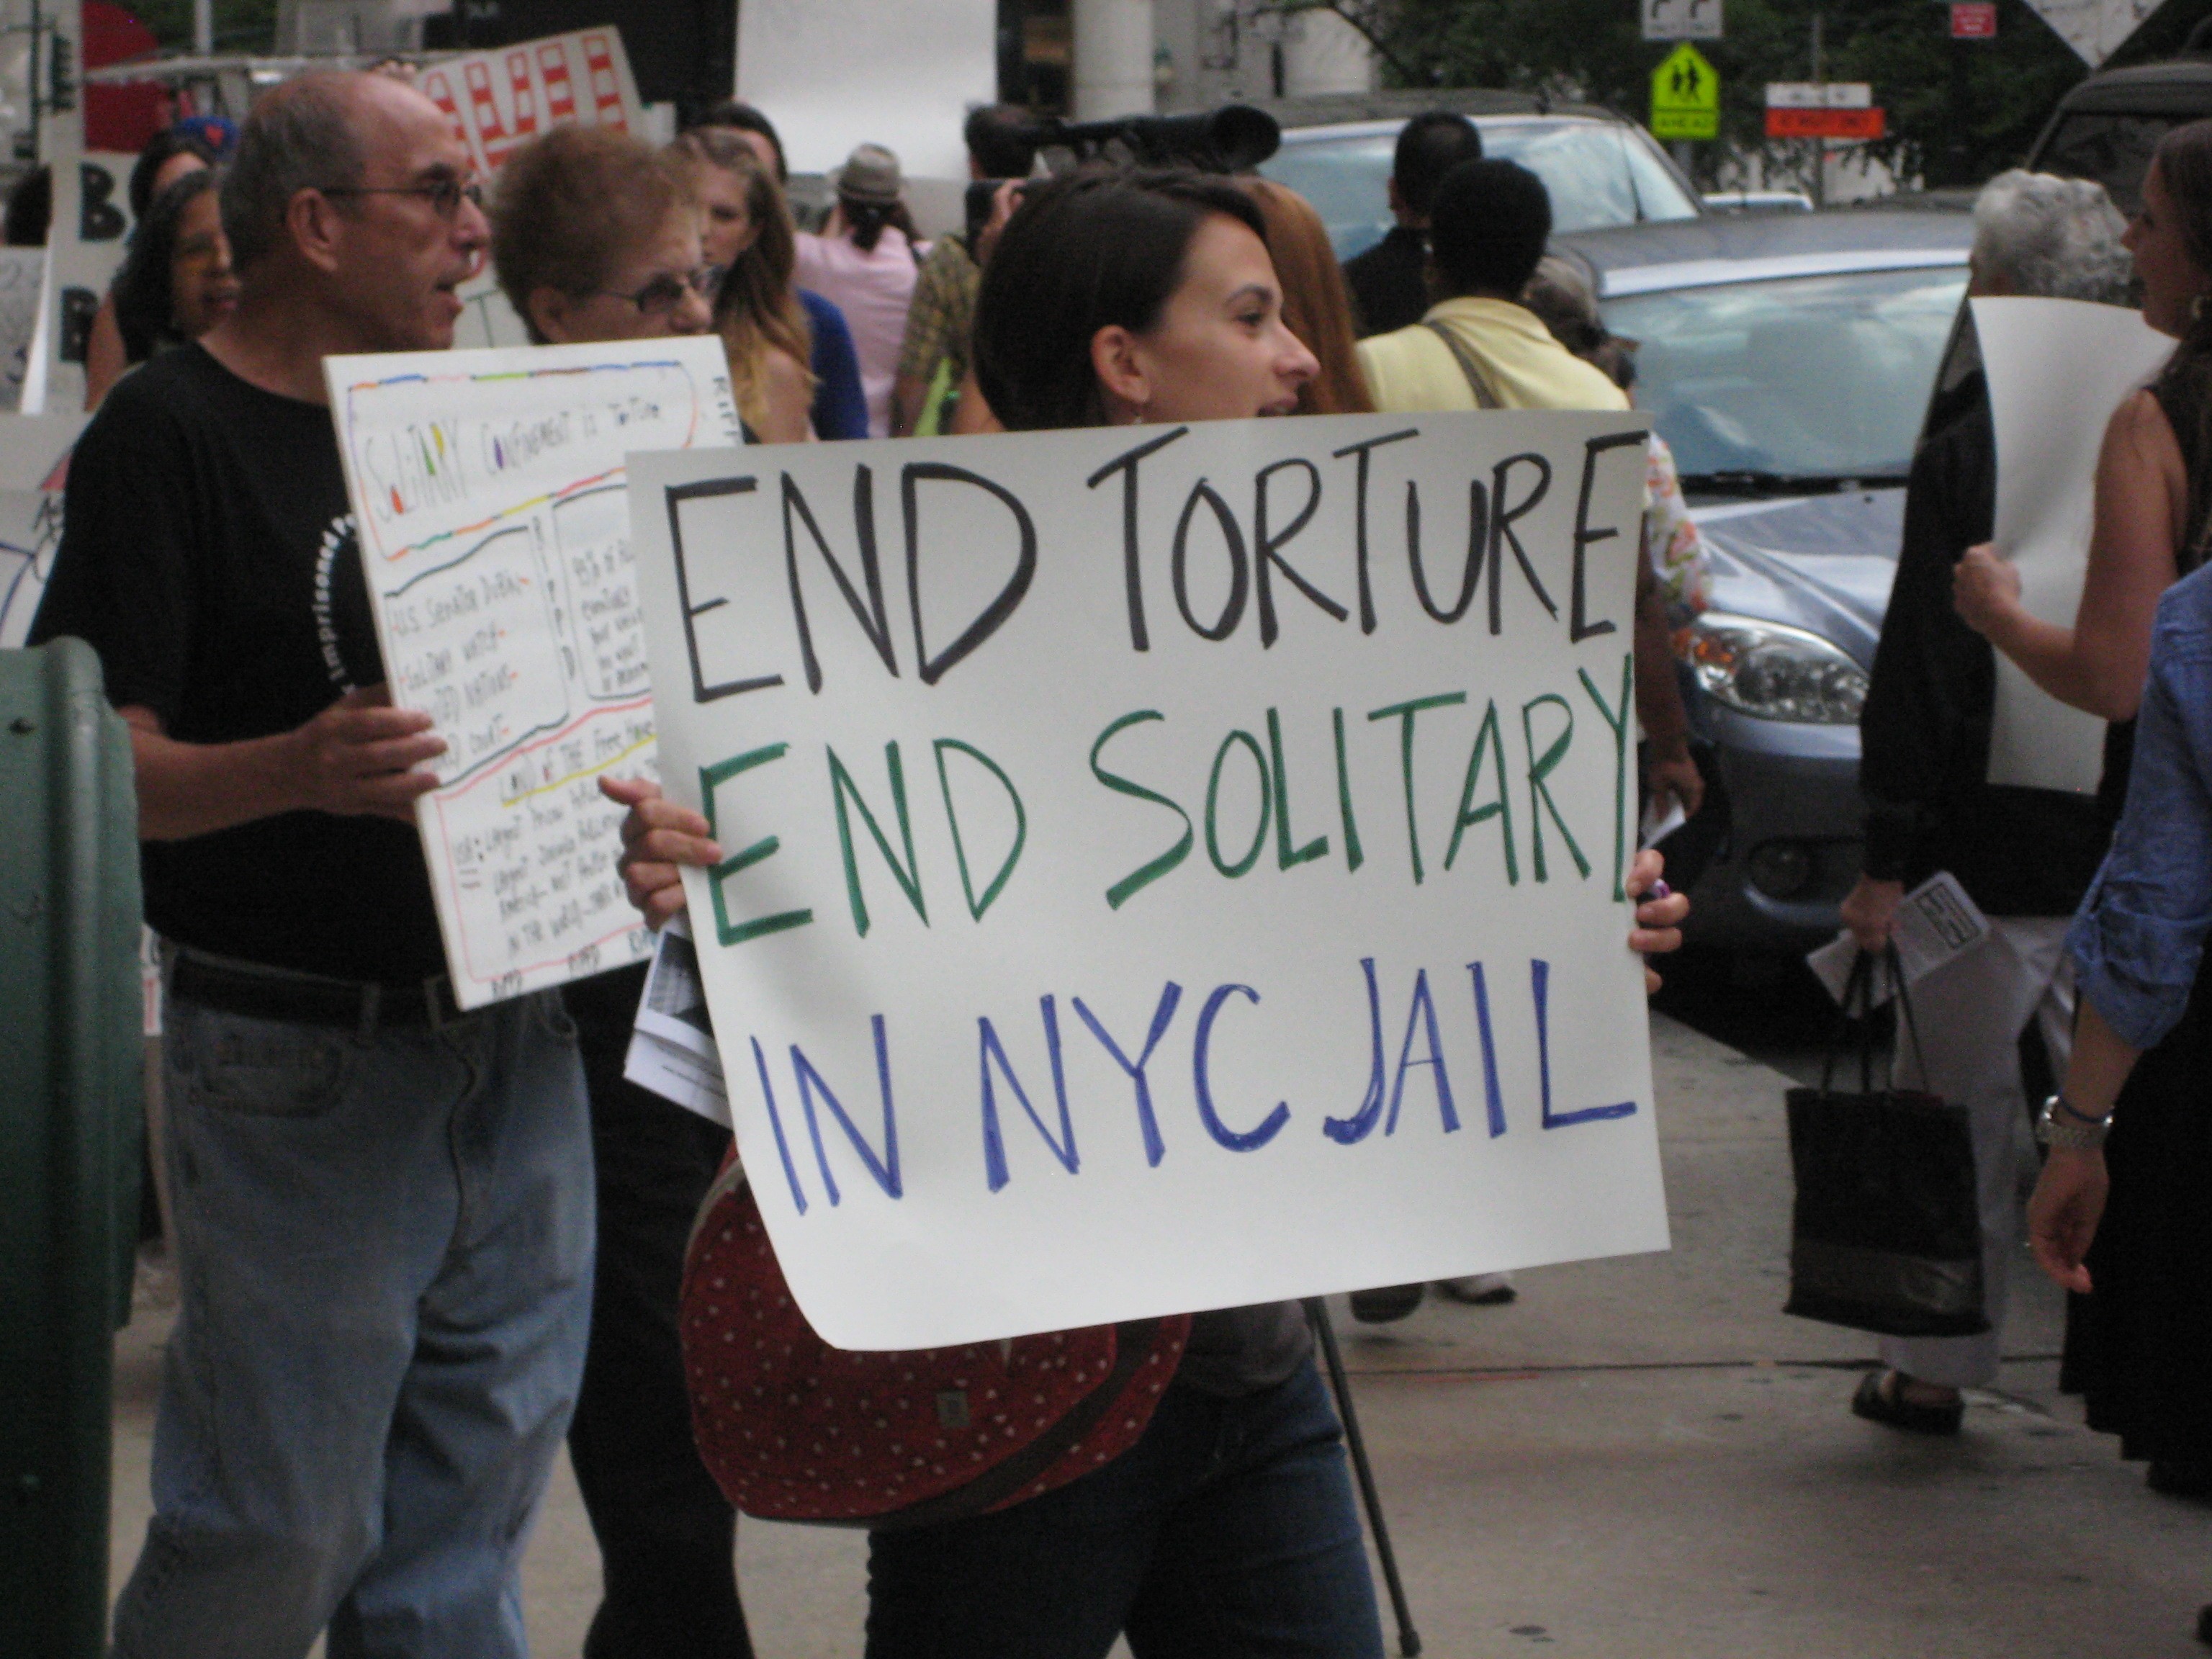 END TORTURE END SOLITARY